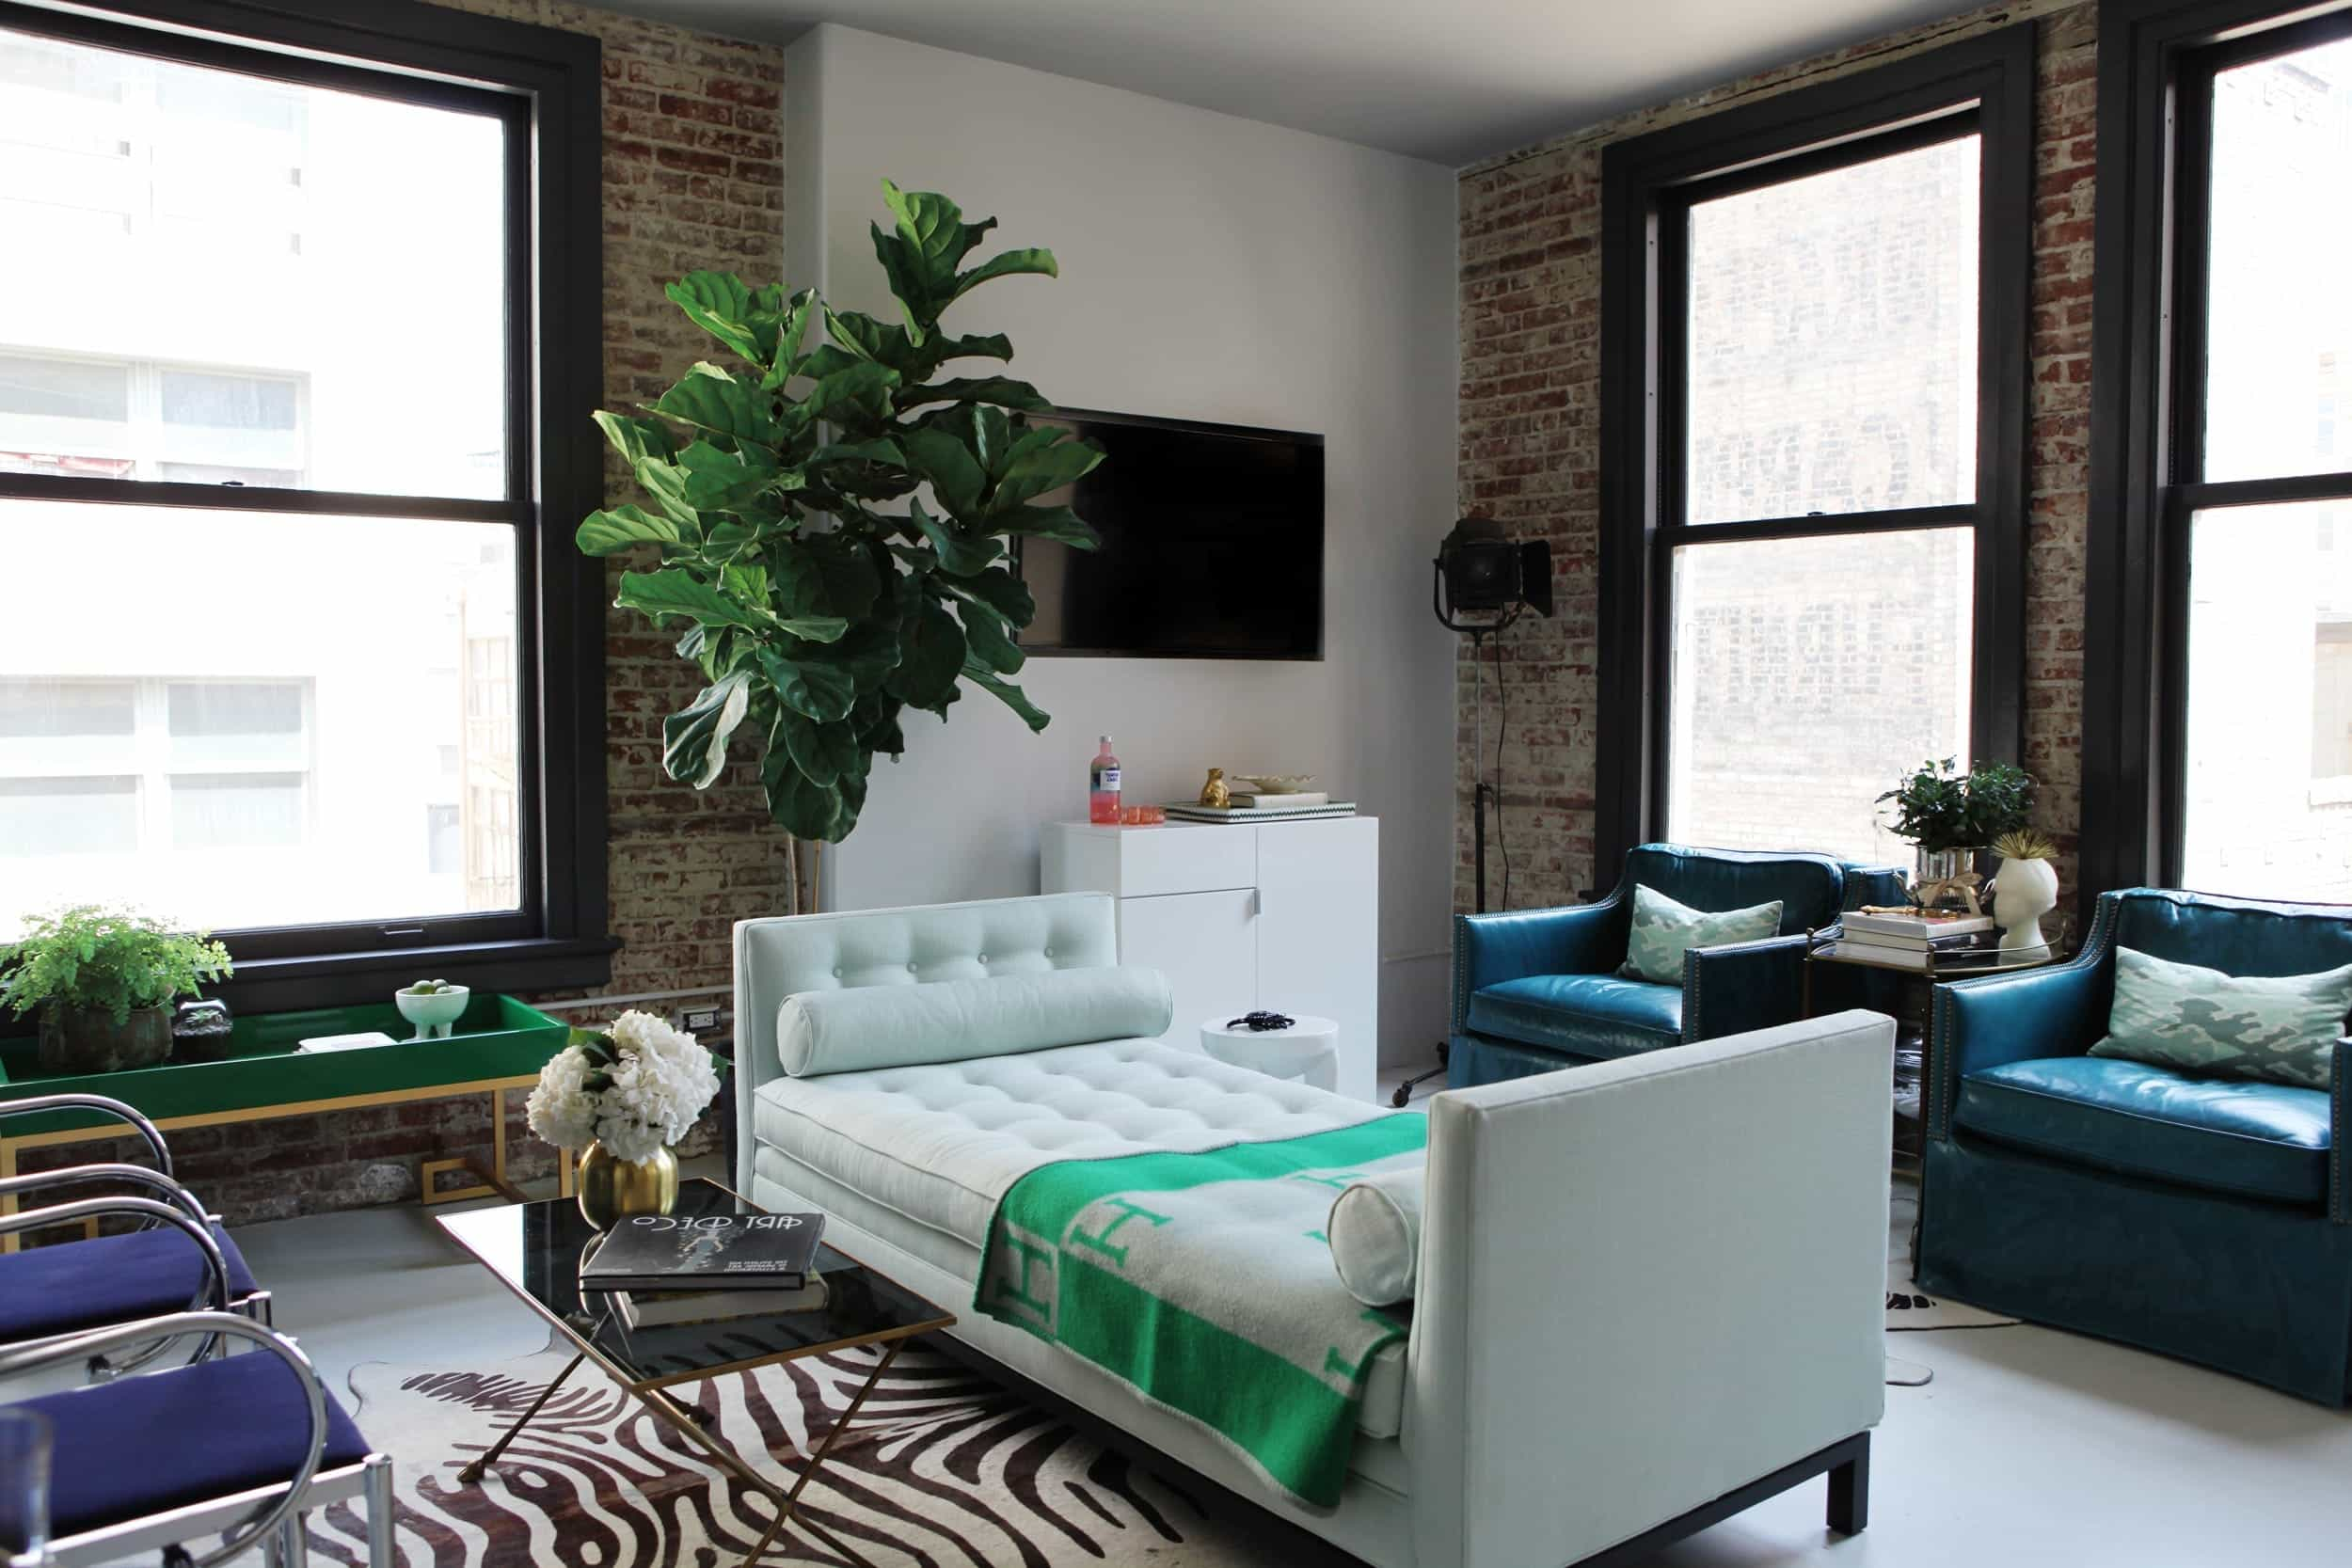 Eclectic Living Room With Exposed Brick Wall (Image 10 of 30)